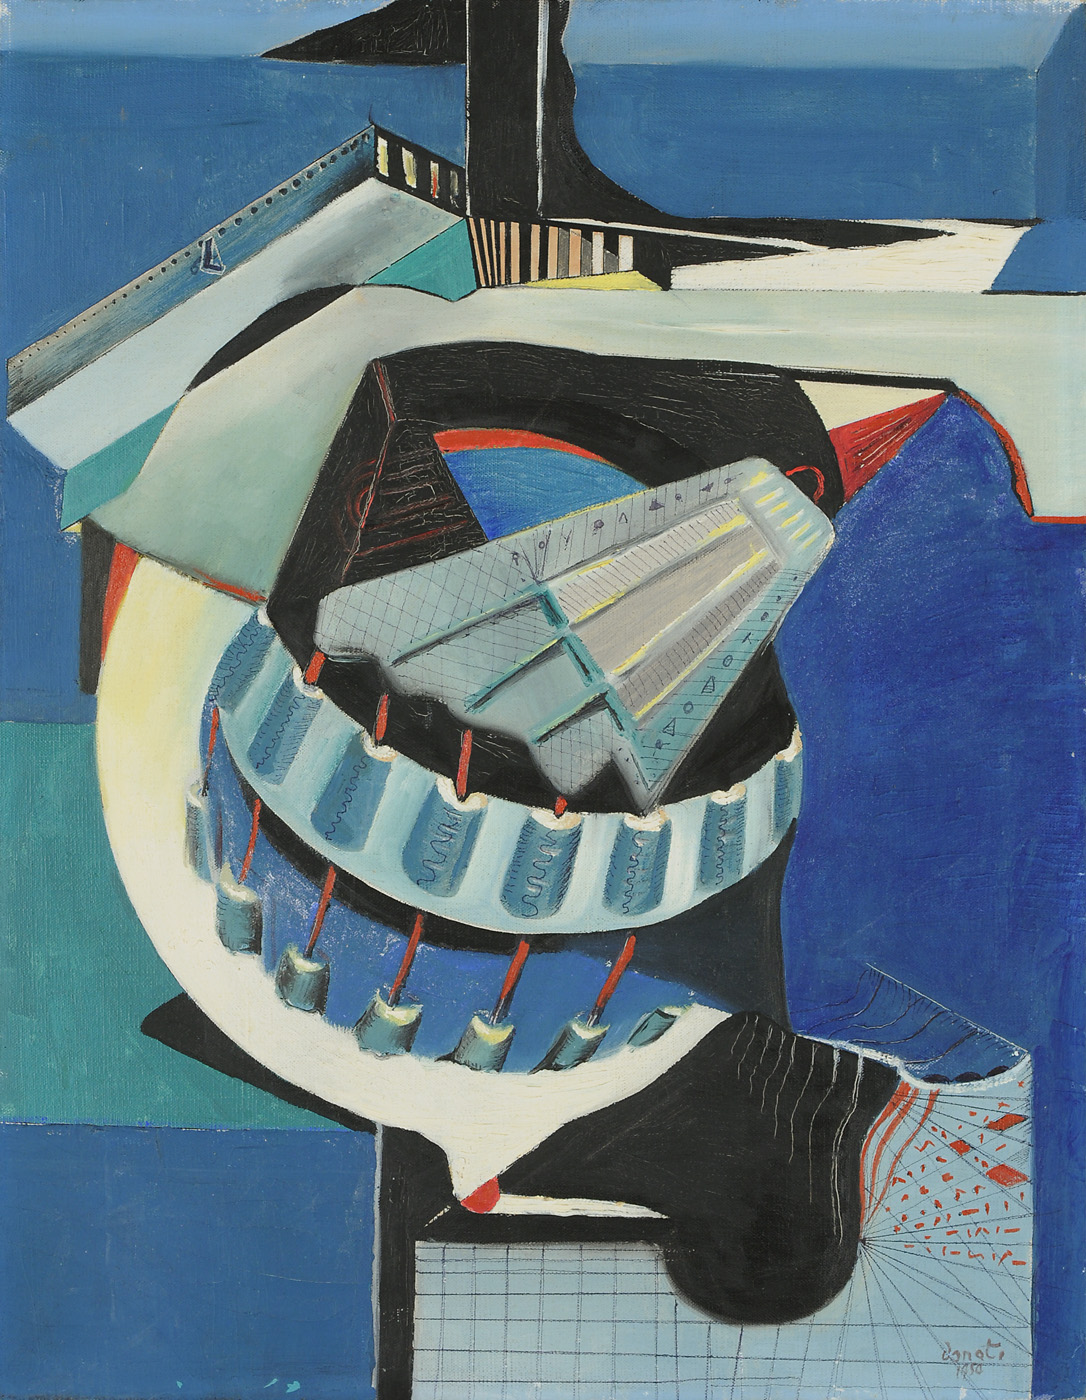 Enrico Donati  Chimes and the Turning Hammers  Oil on canvas 1950